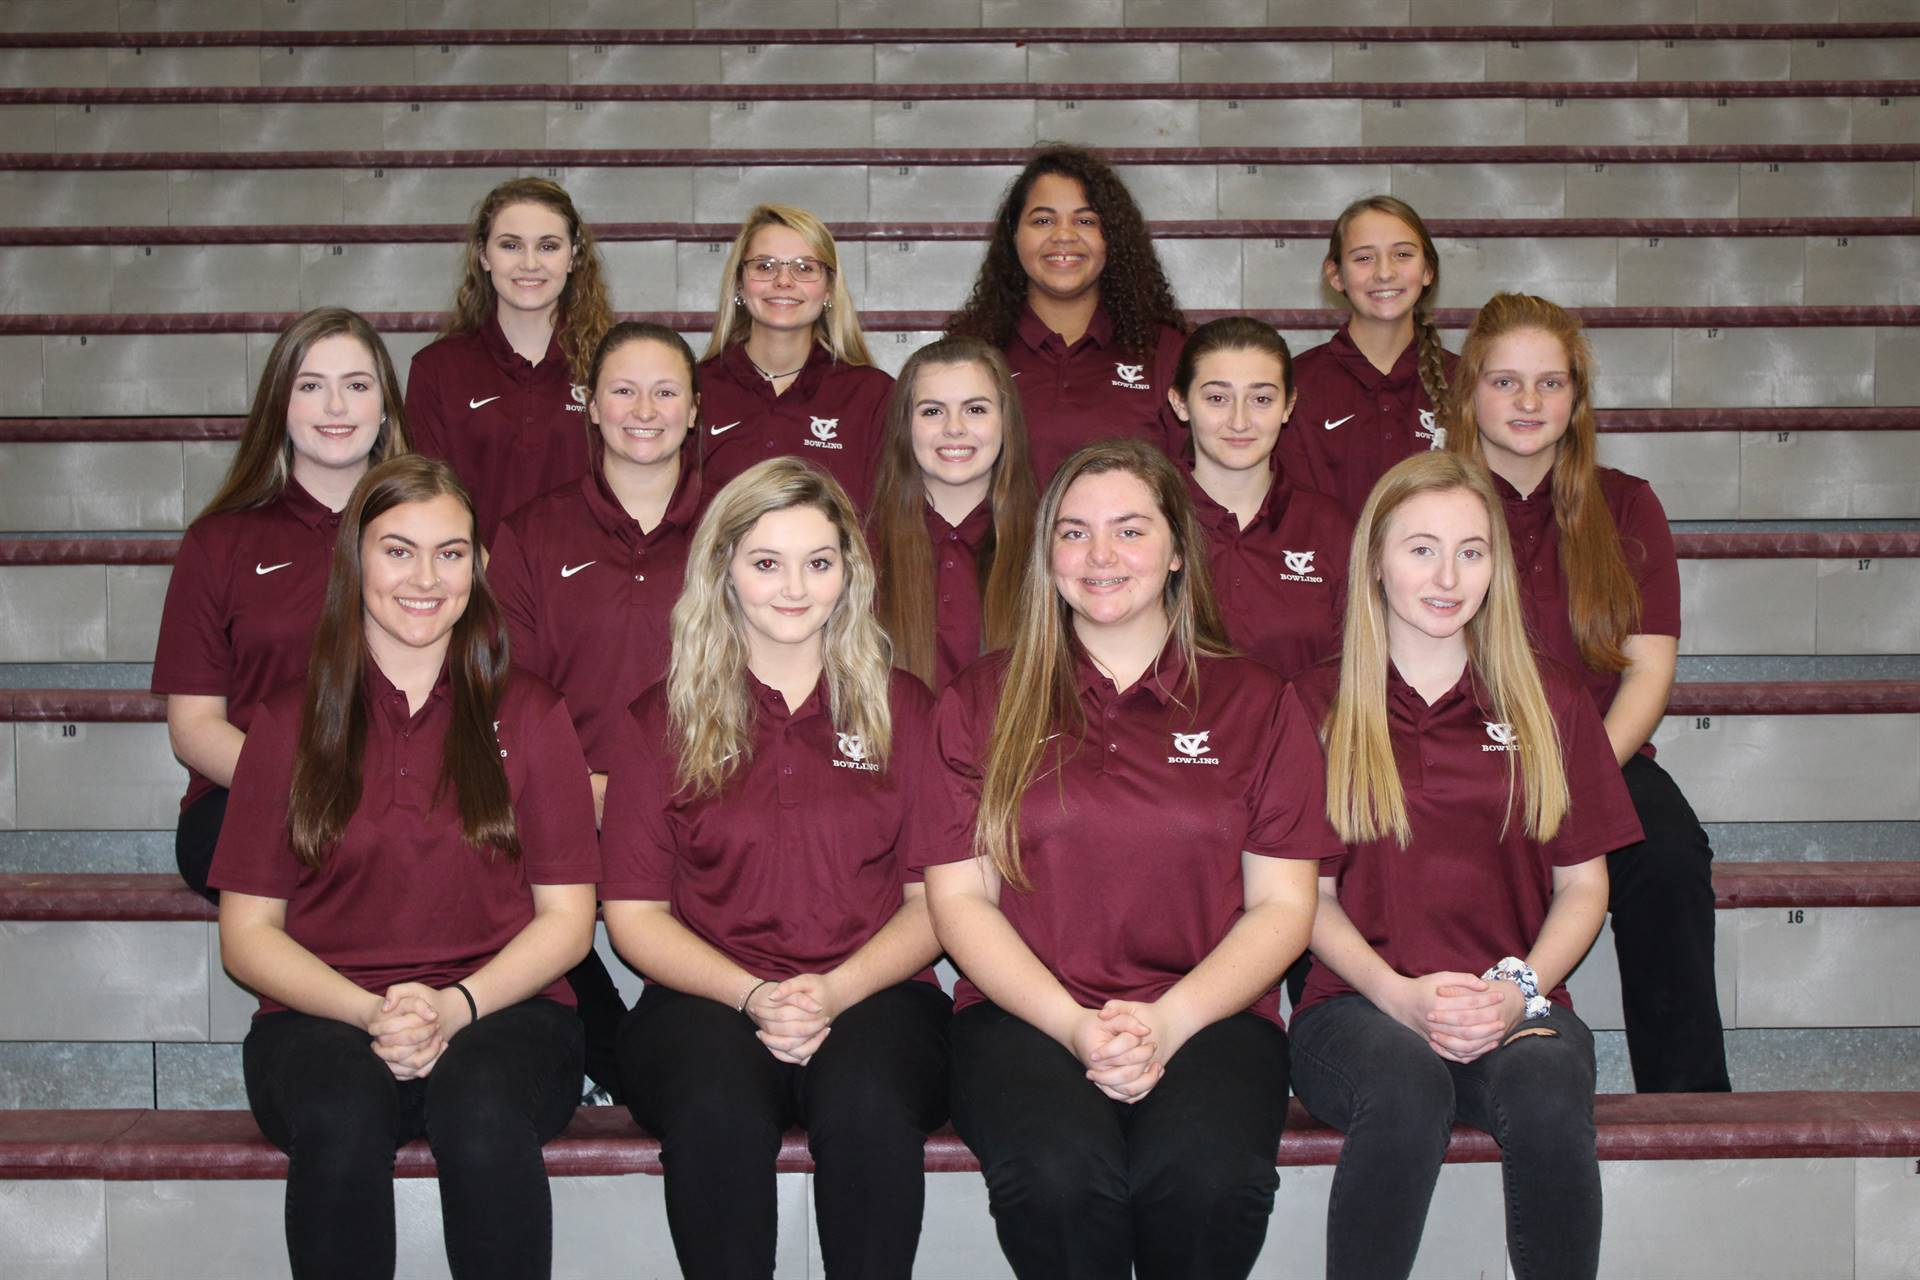 2018/2019 Girls Bowling Team